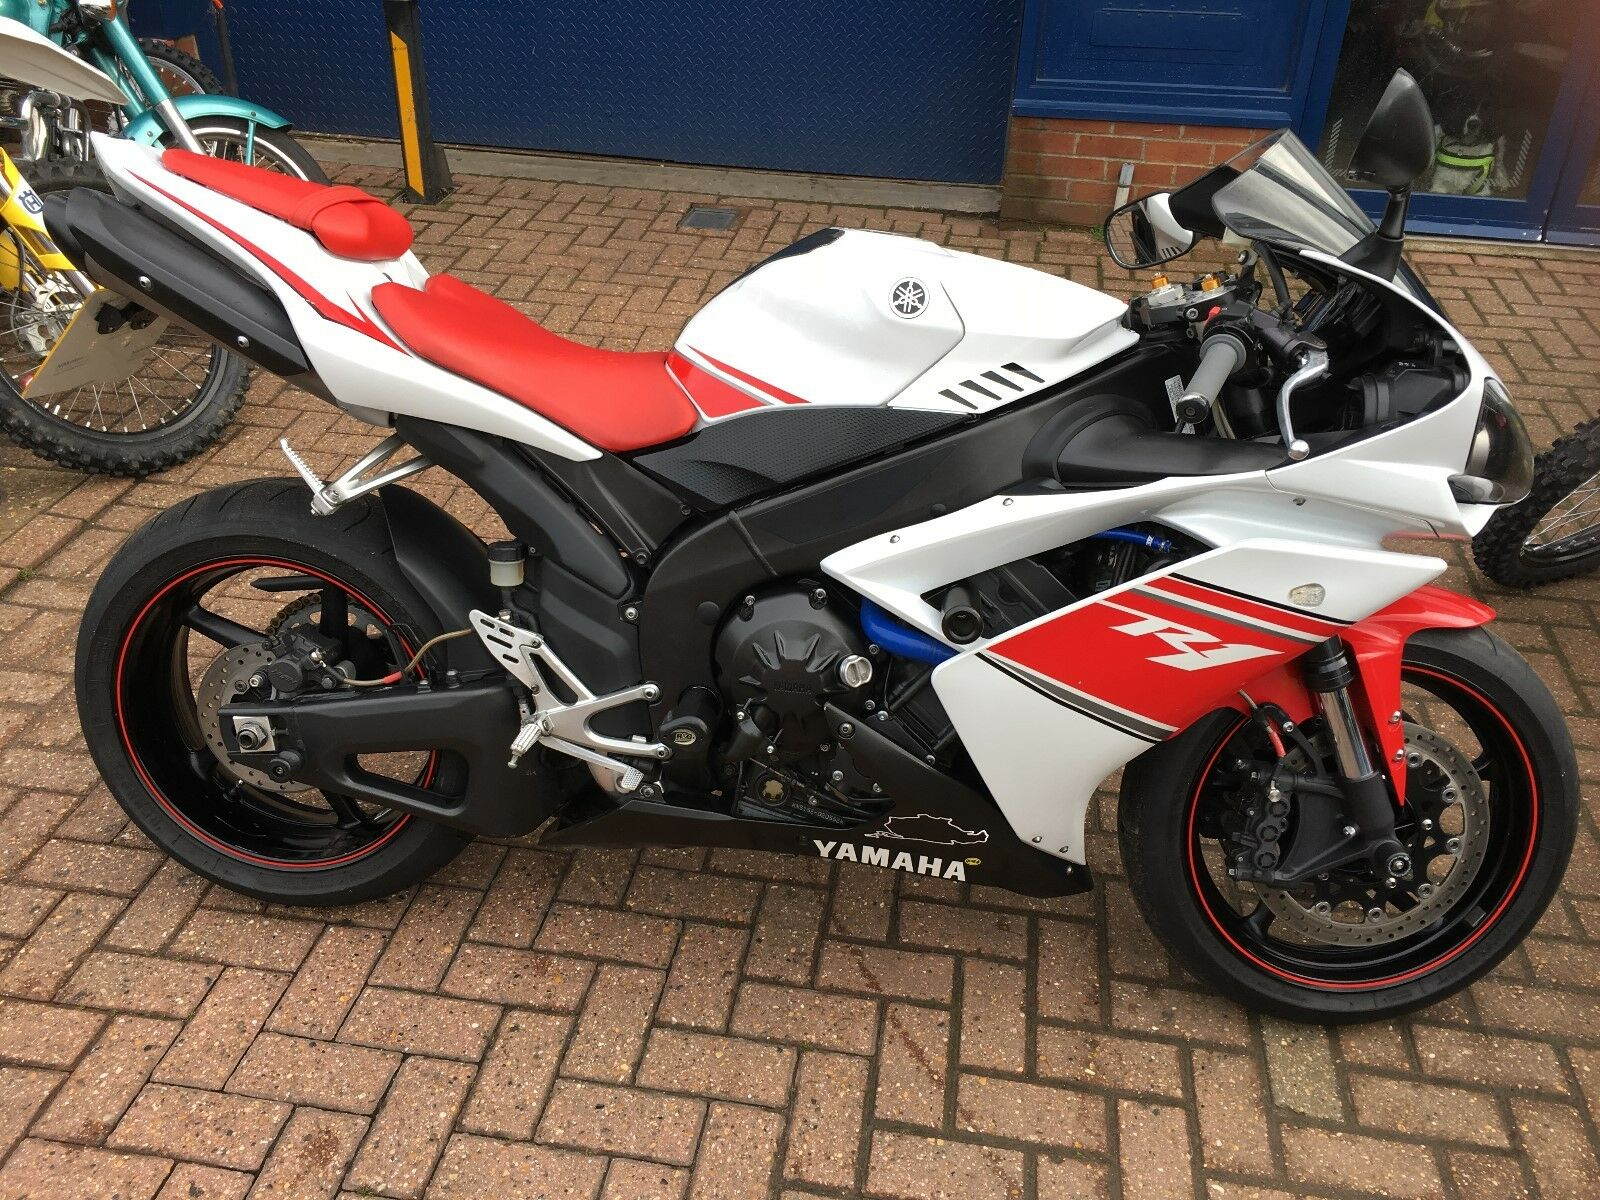 yamaha yzf r1 2007 road track bike for sale again 3 232 00 rh picclick co uk 2009 R1 2007 r1 owner's manual